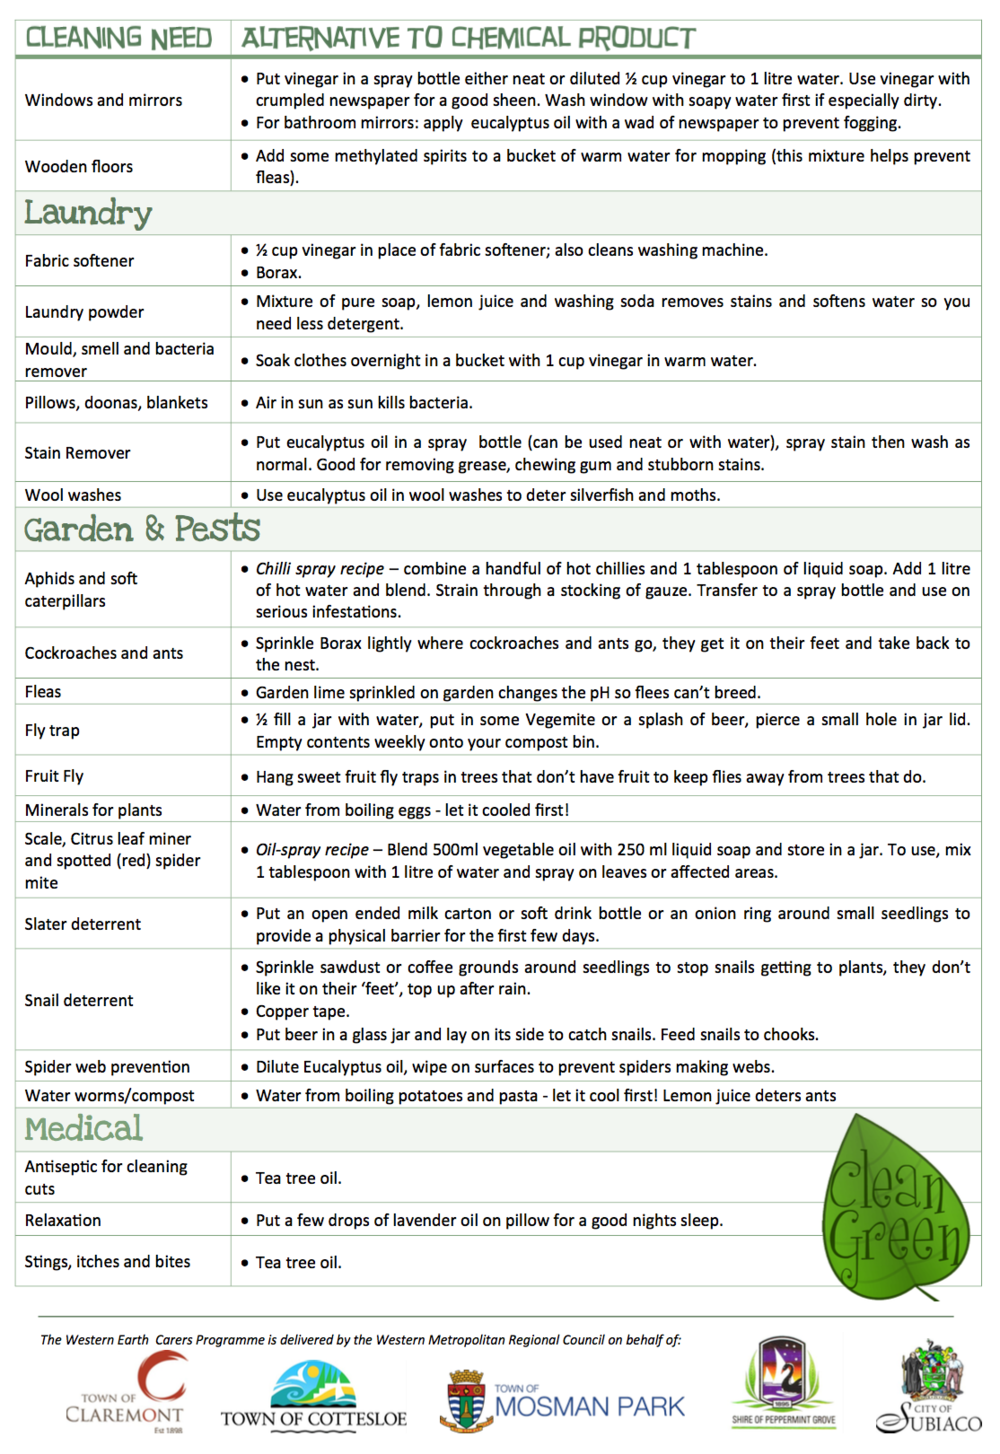 Green Cleaning Page 2